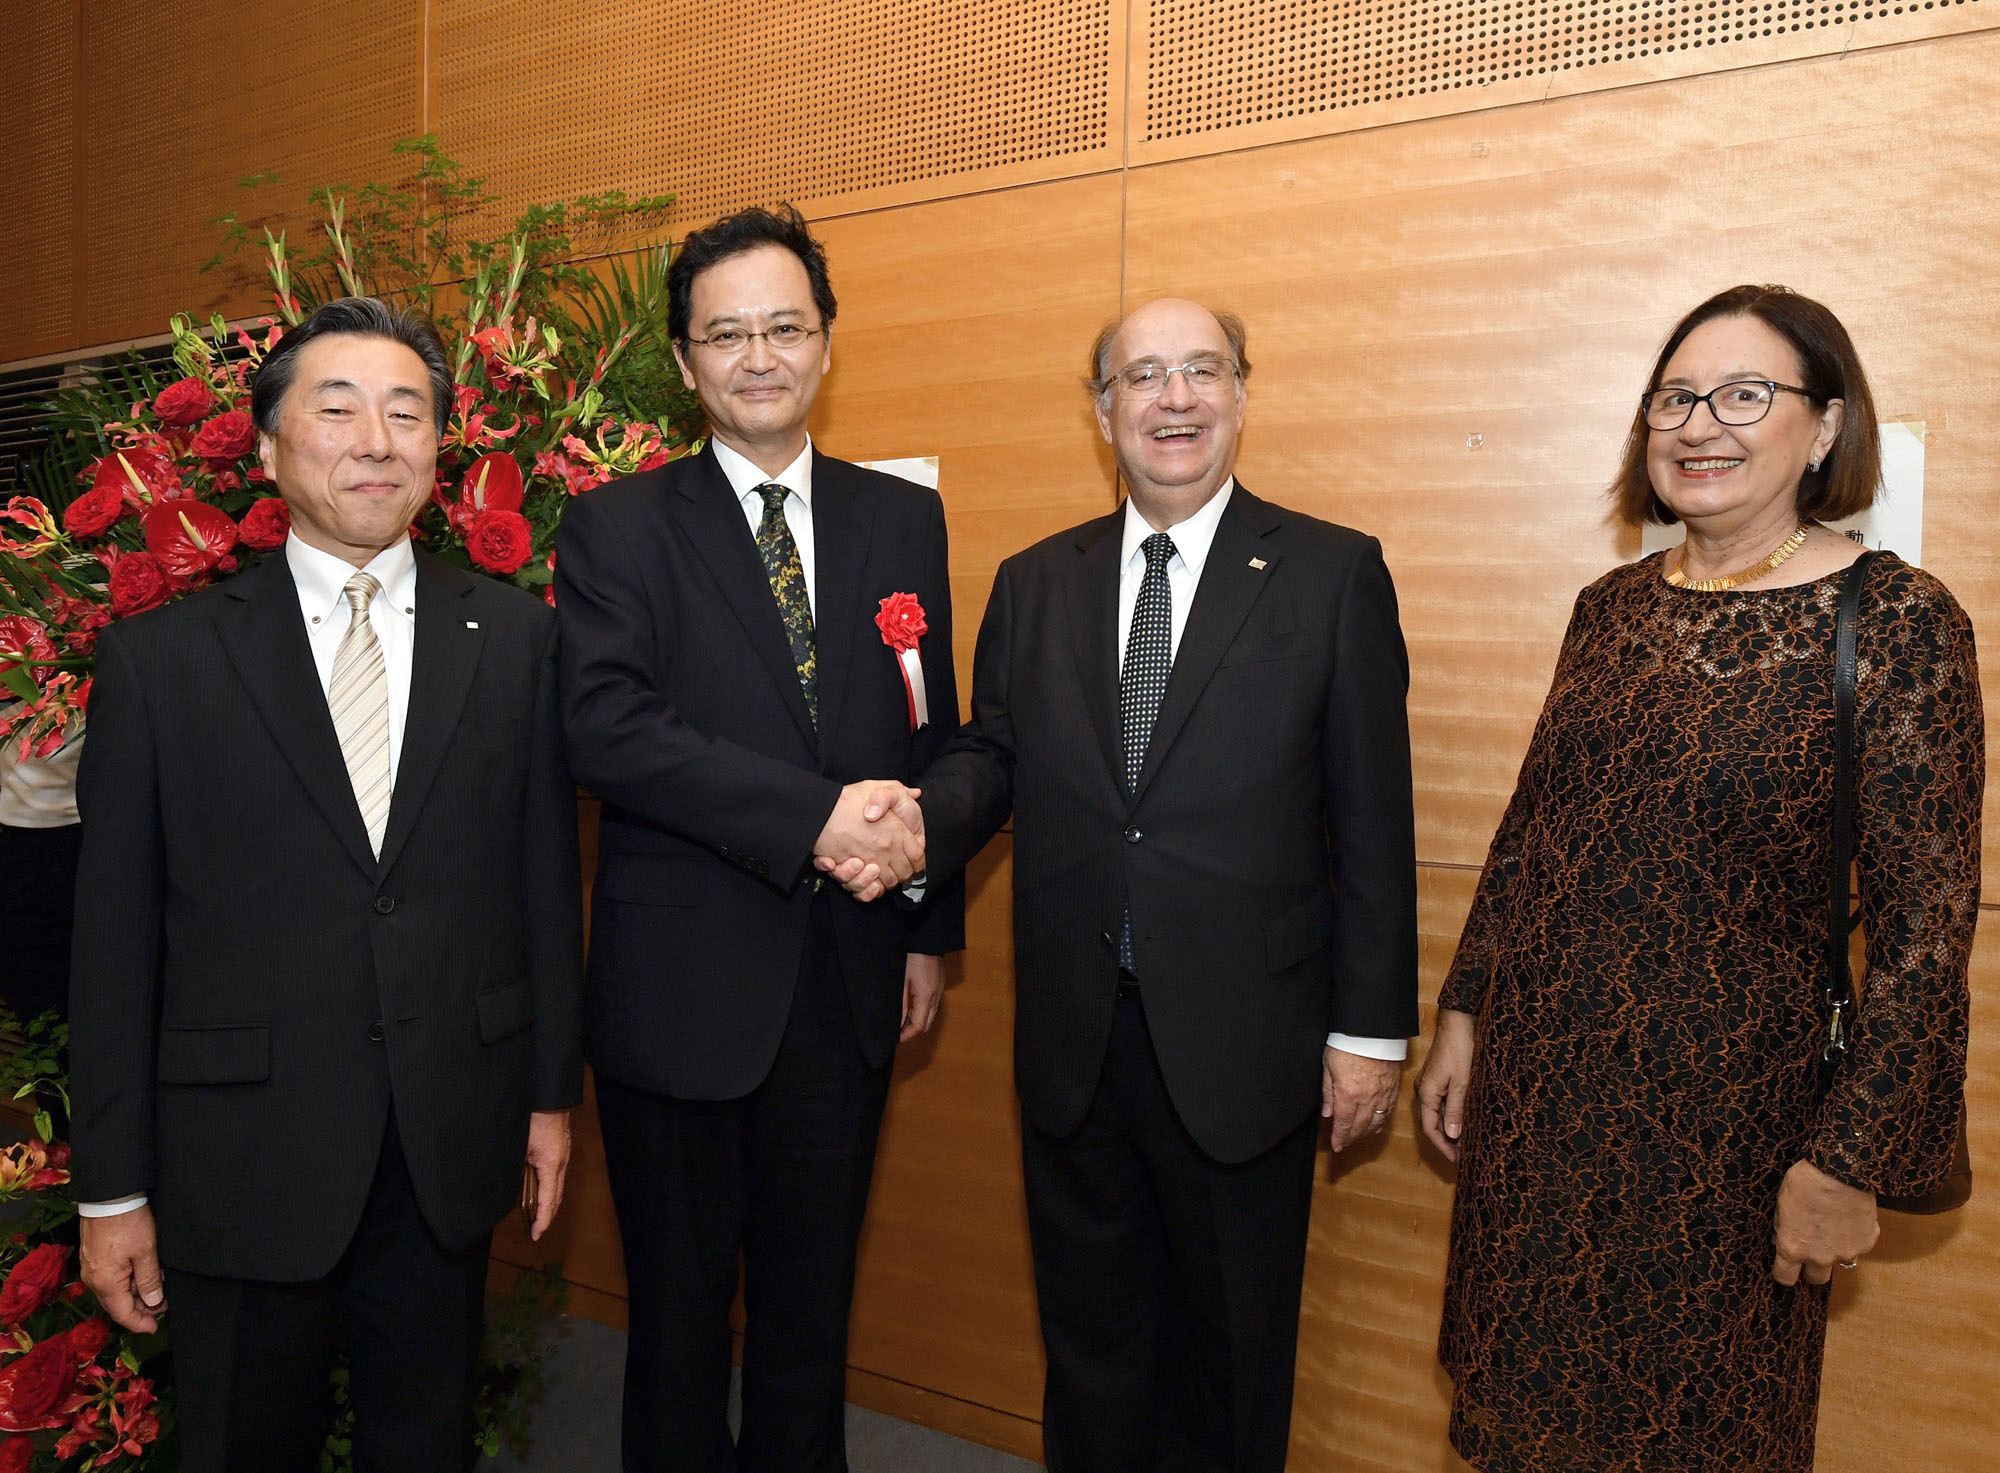 Uruguay Ambassador Cesar Ferrer (second from right) and his wife, Ana Maria, pose for a photo with Latin American and Caribbean Affairs Bureau Director-General Takahiro Nakamae (second from left) and Kazuto Ito, president of the Min-On Cocert Association, during a cocktail reception to celebrate Uruguay's independence day at the Min-On Cultural Center in Tokyo on Sept. 4. |   YOSHIAKI MIURA